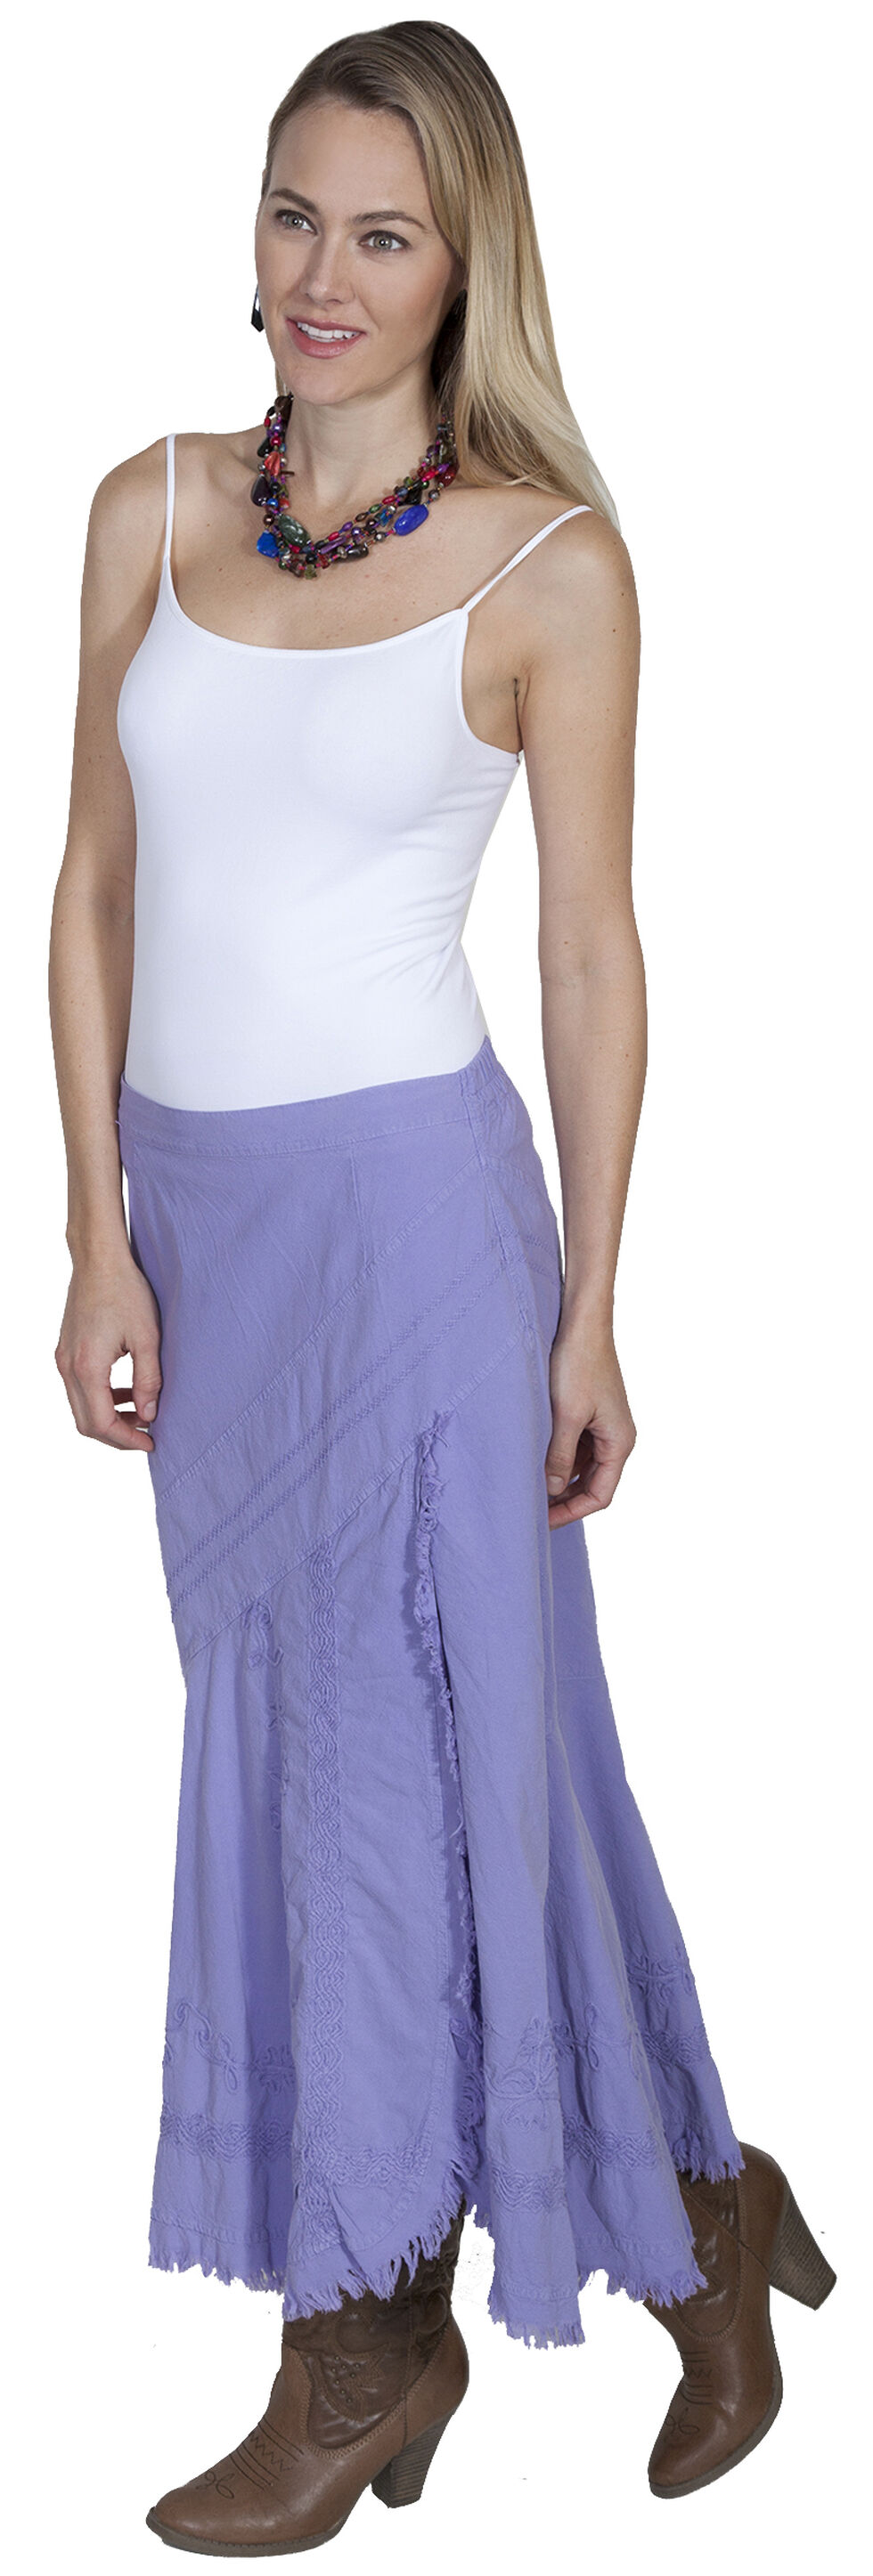 Scully Embroidered Western Skirt, Violet, hi-res